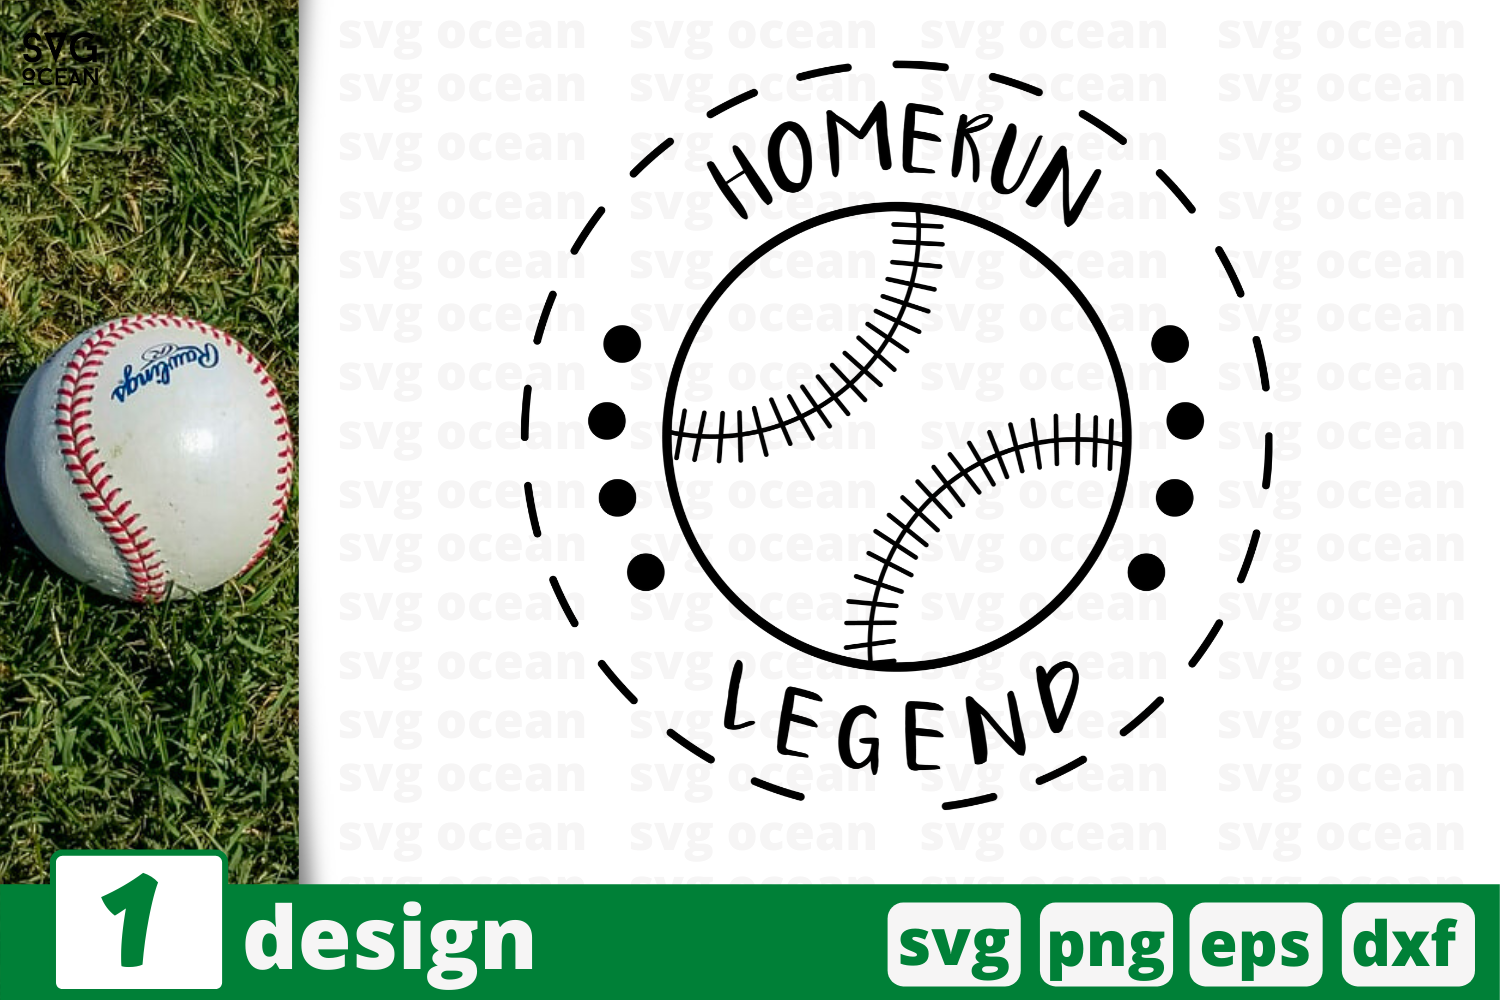 Download Free 1 Homerun Legend Baseball Svg For Cricut Graphic By Svgocean for Cricut Explore, Silhouette and other cutting machines.